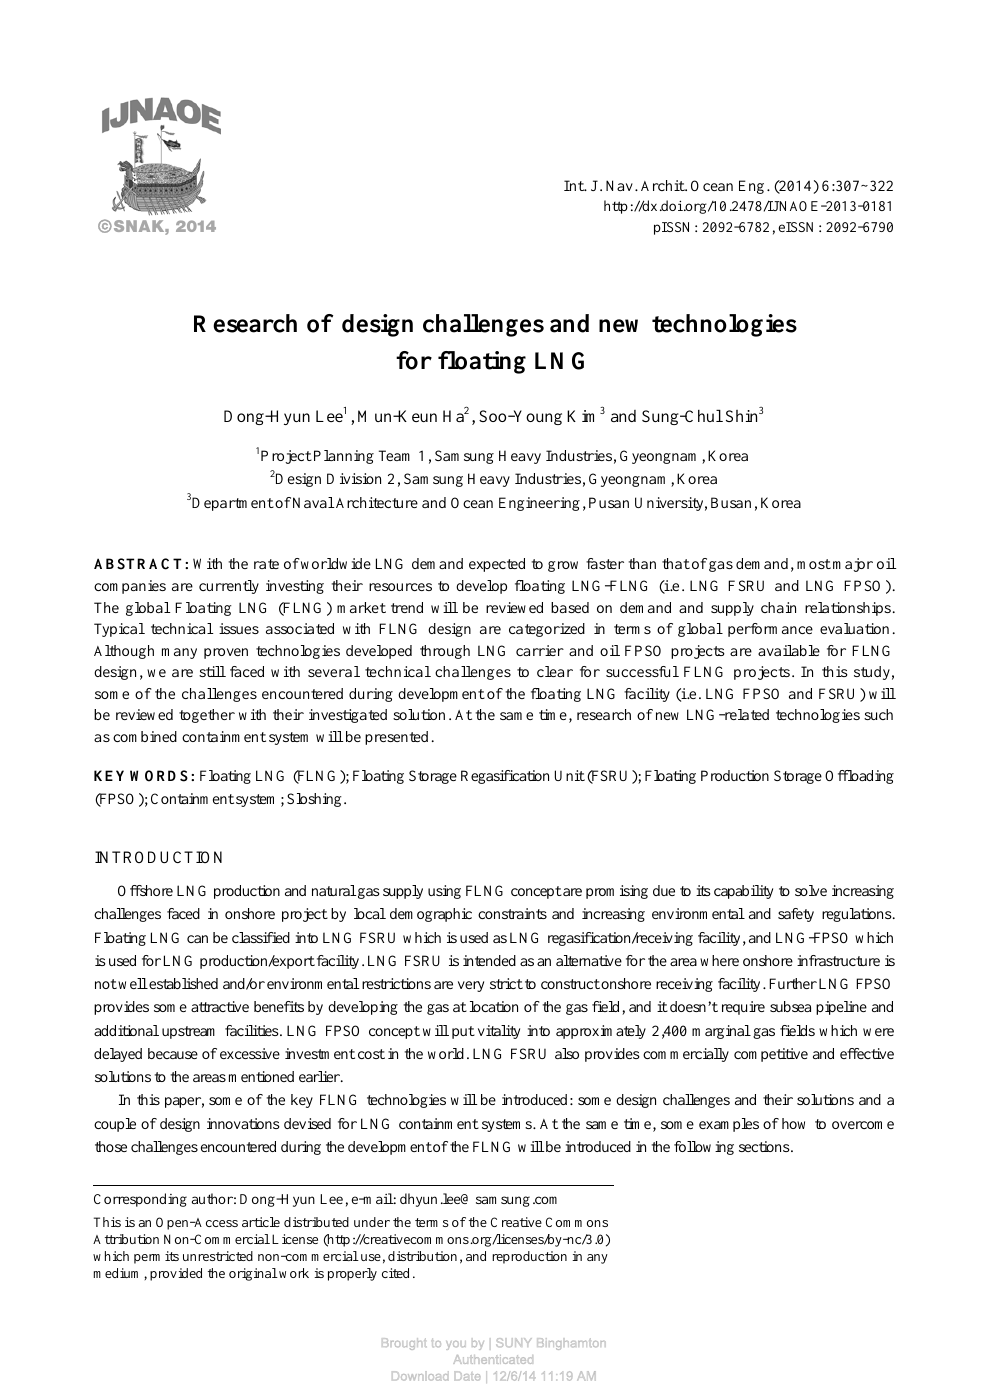 Research of design challenges and new technologies for floating LNG